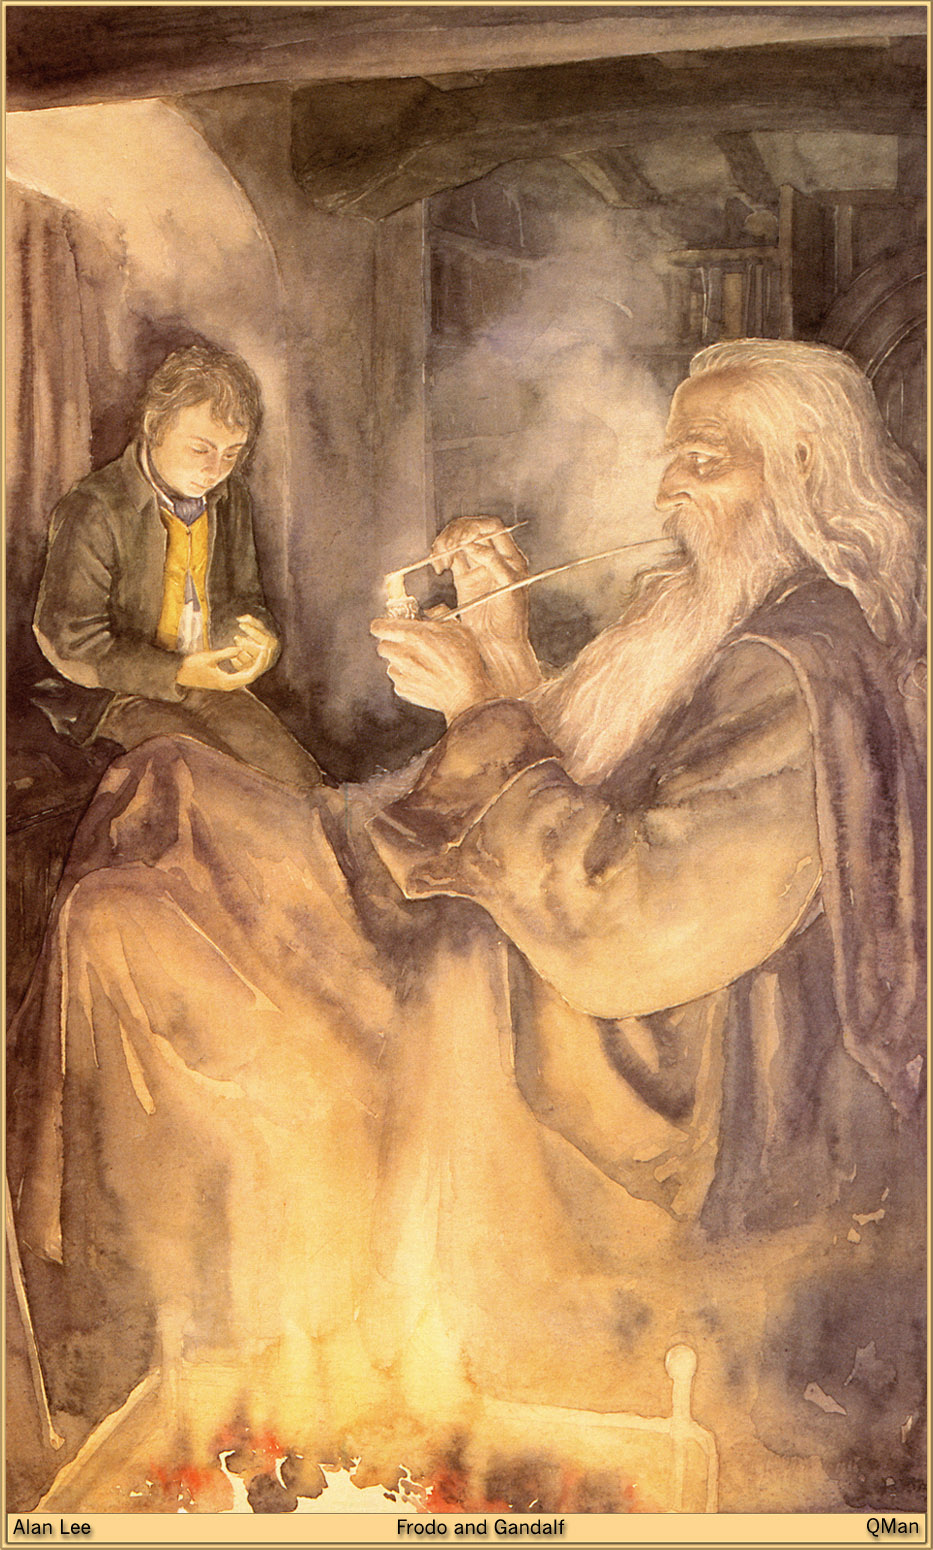 """""""l wish it need not have happened in my time,"""" said Frodo.  """"So do I,"""" said Gandalf, """"and so do all who live to see such times. But…"""""""